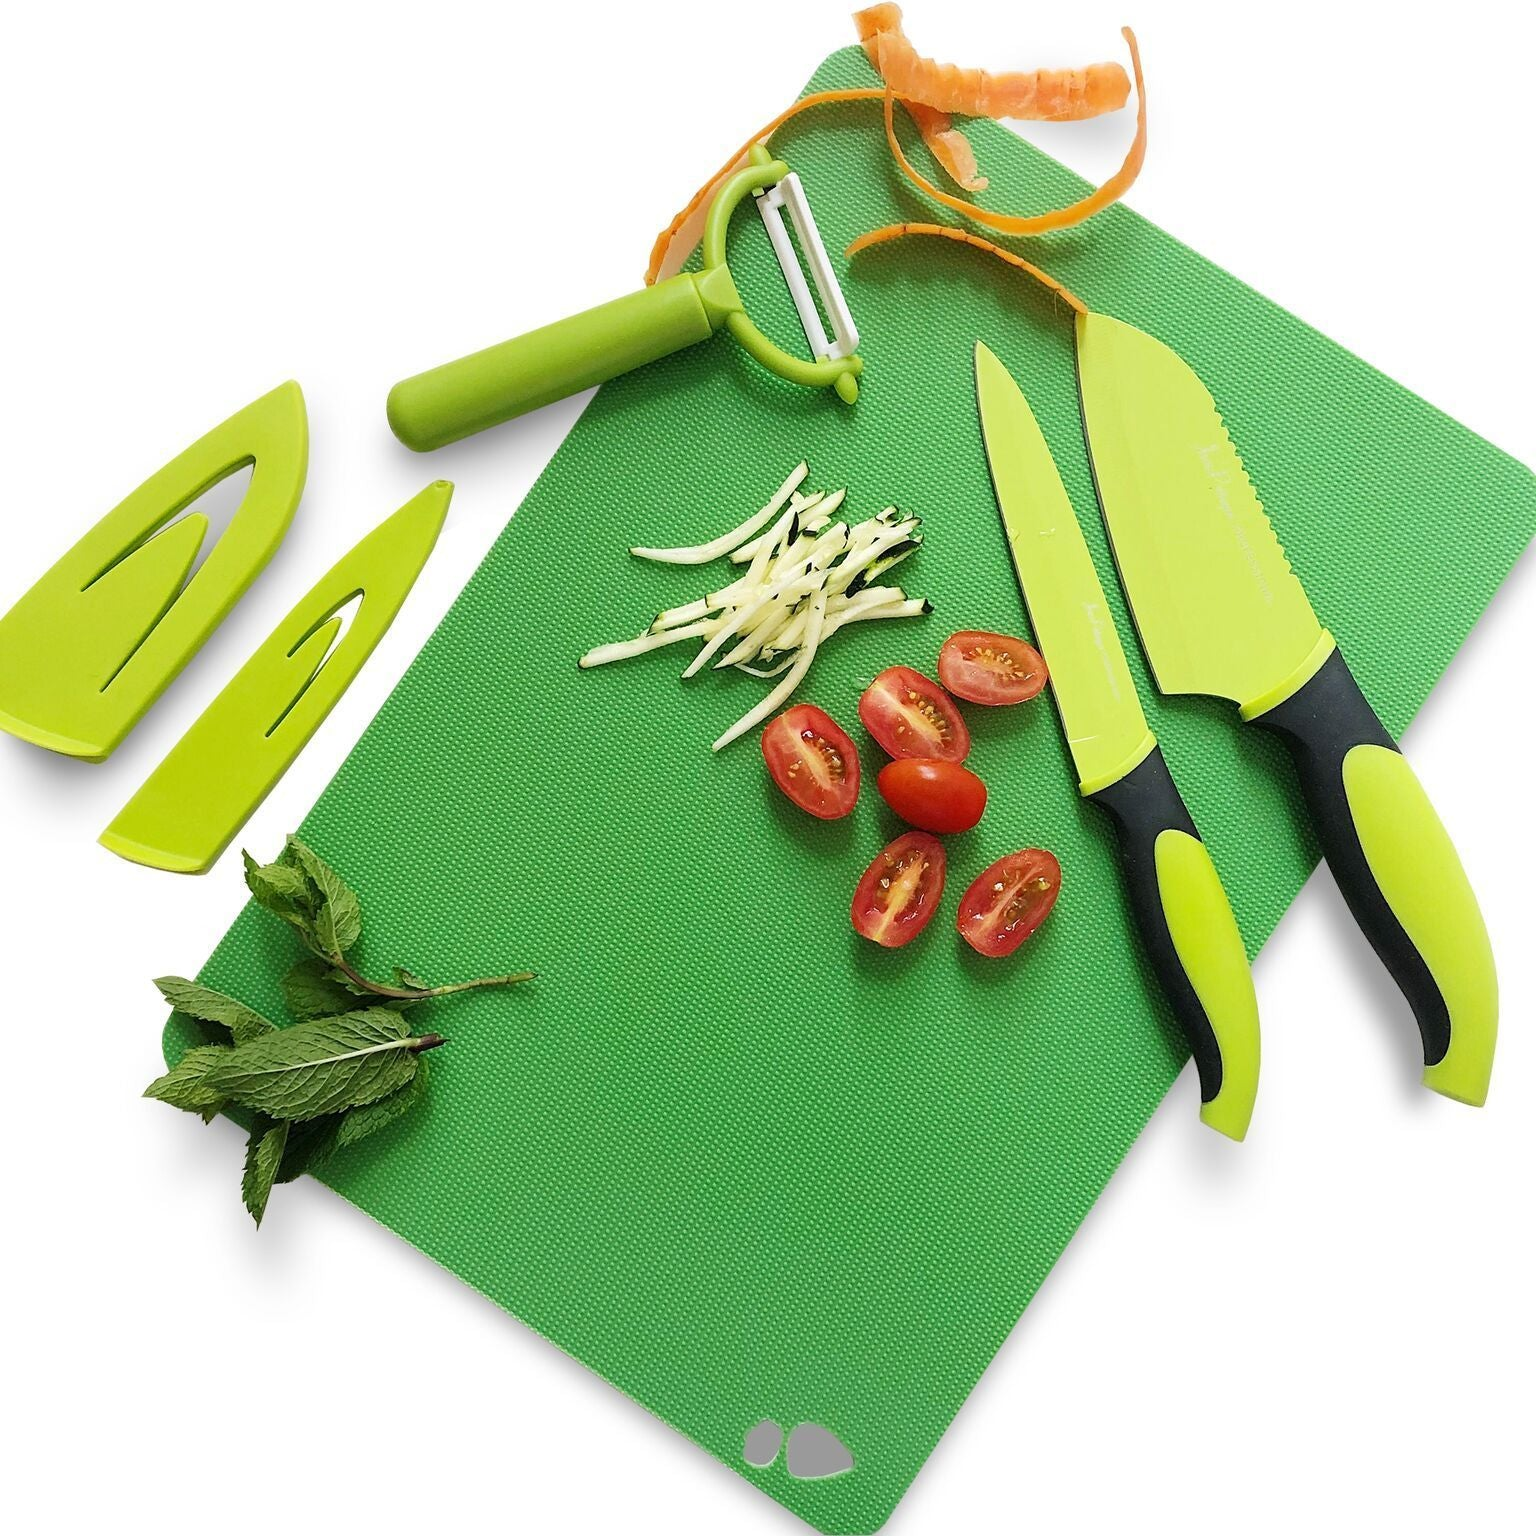 3 Piece Chef's Non-Stick Green & Black Prep Set